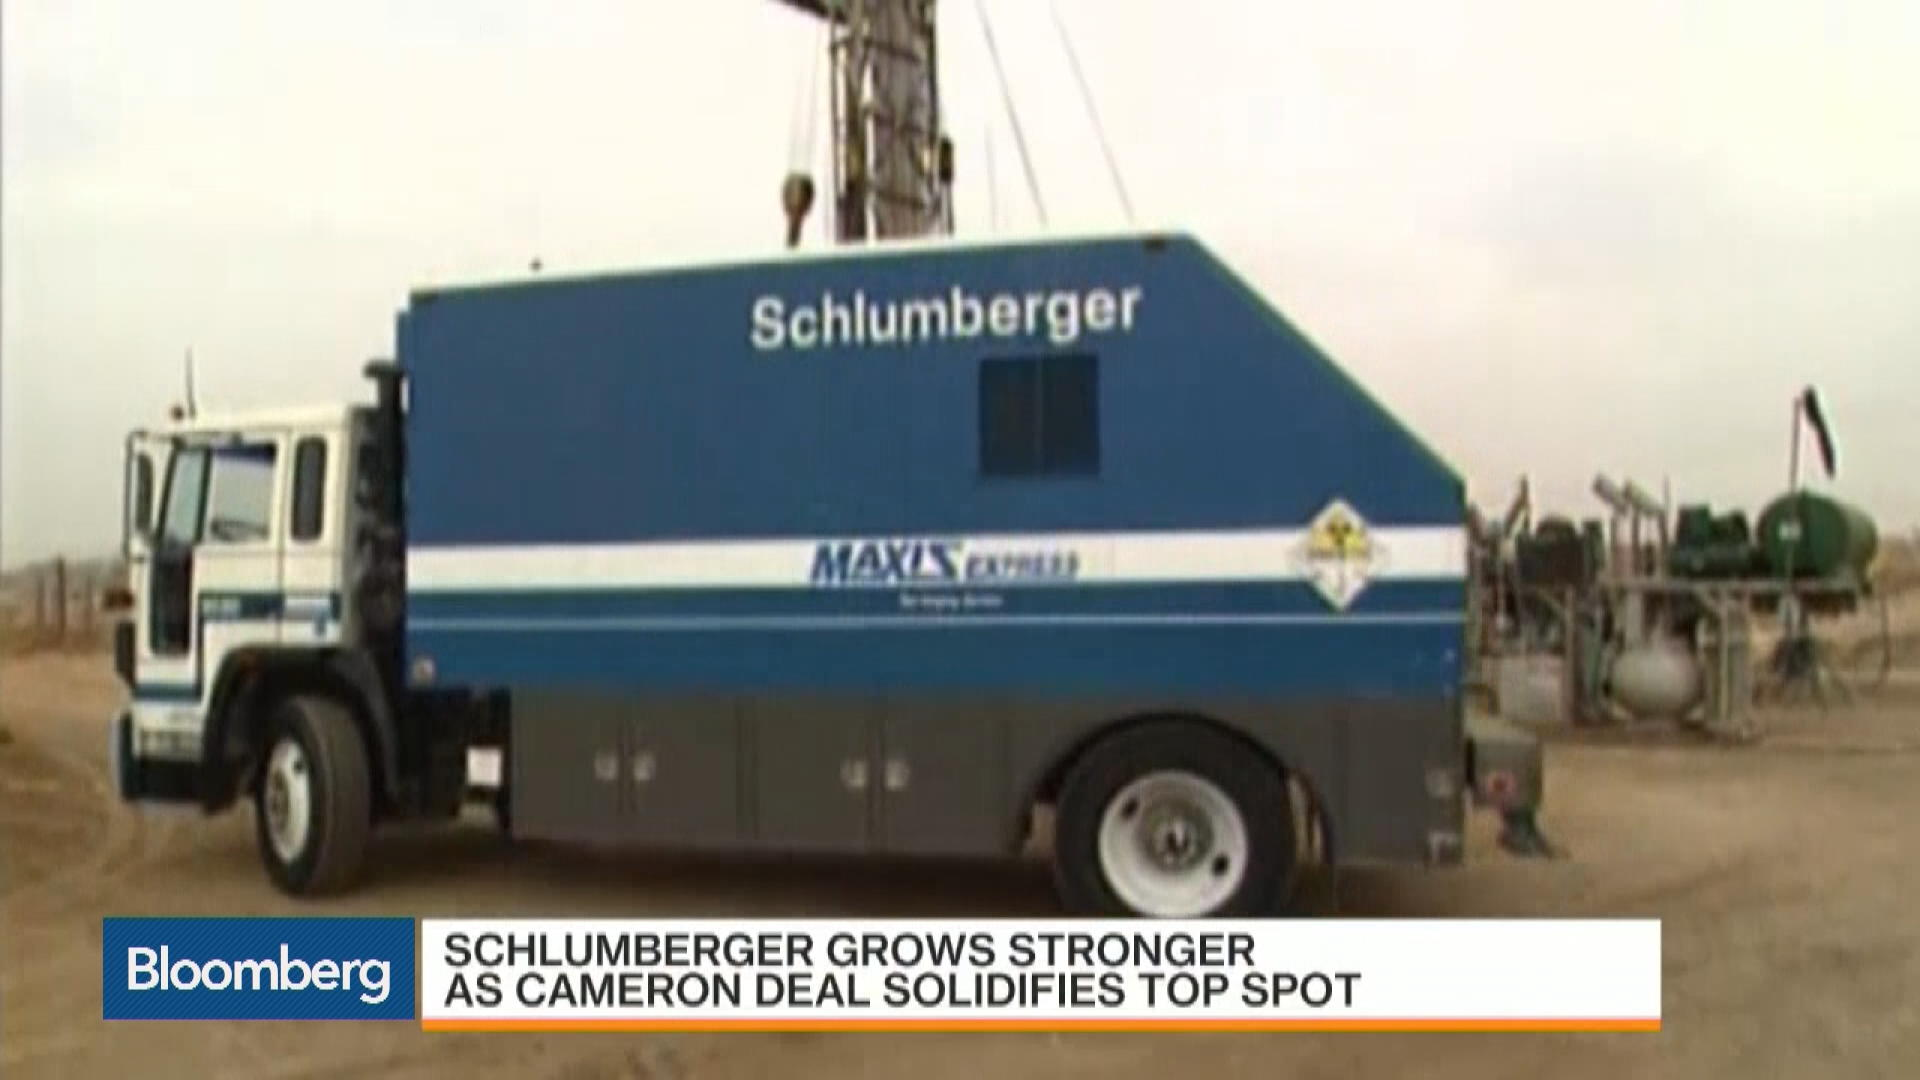 Schlumberger Stronger as Cameron Deal Soldifies Top Spot